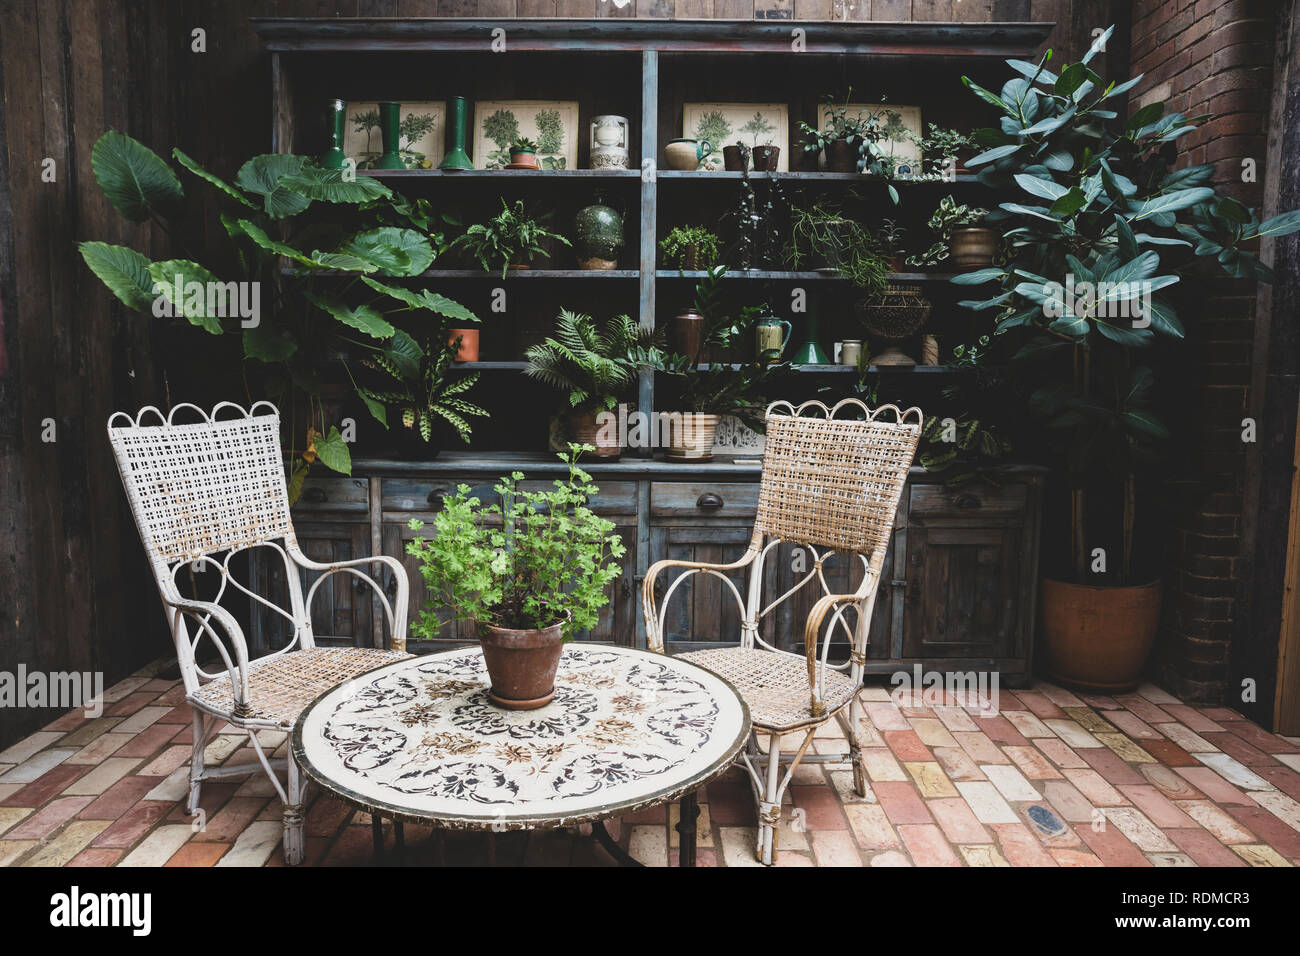 Garden Room With Vintage Wicker Chairs And Table And A ...